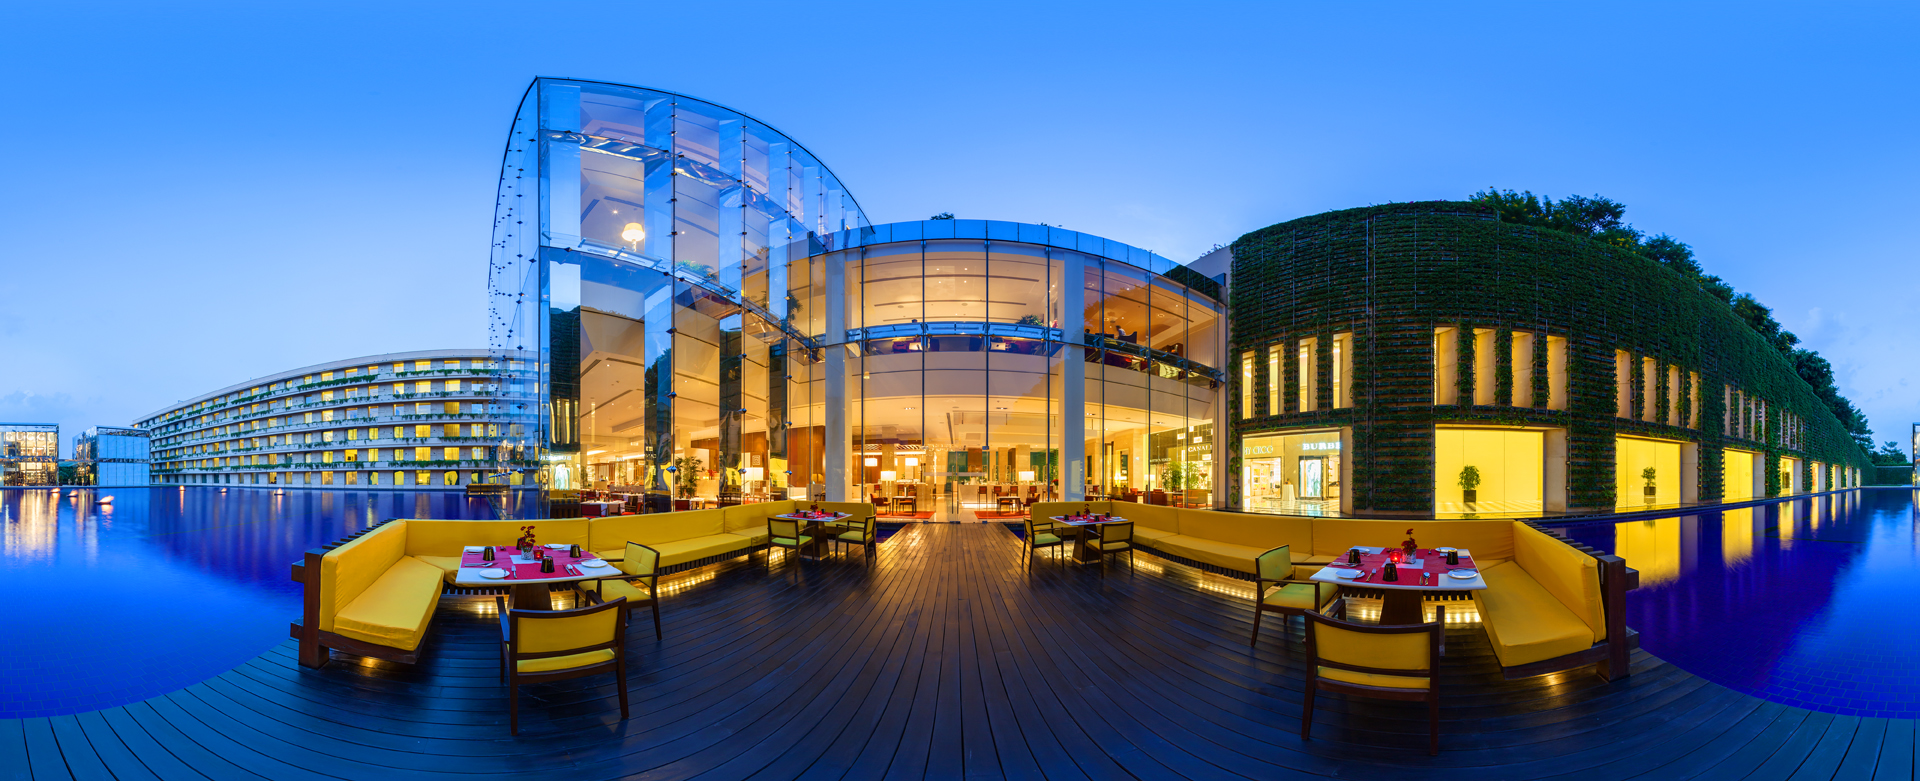 Hotel resort virtual tours, for the leading hotels and biggest brands